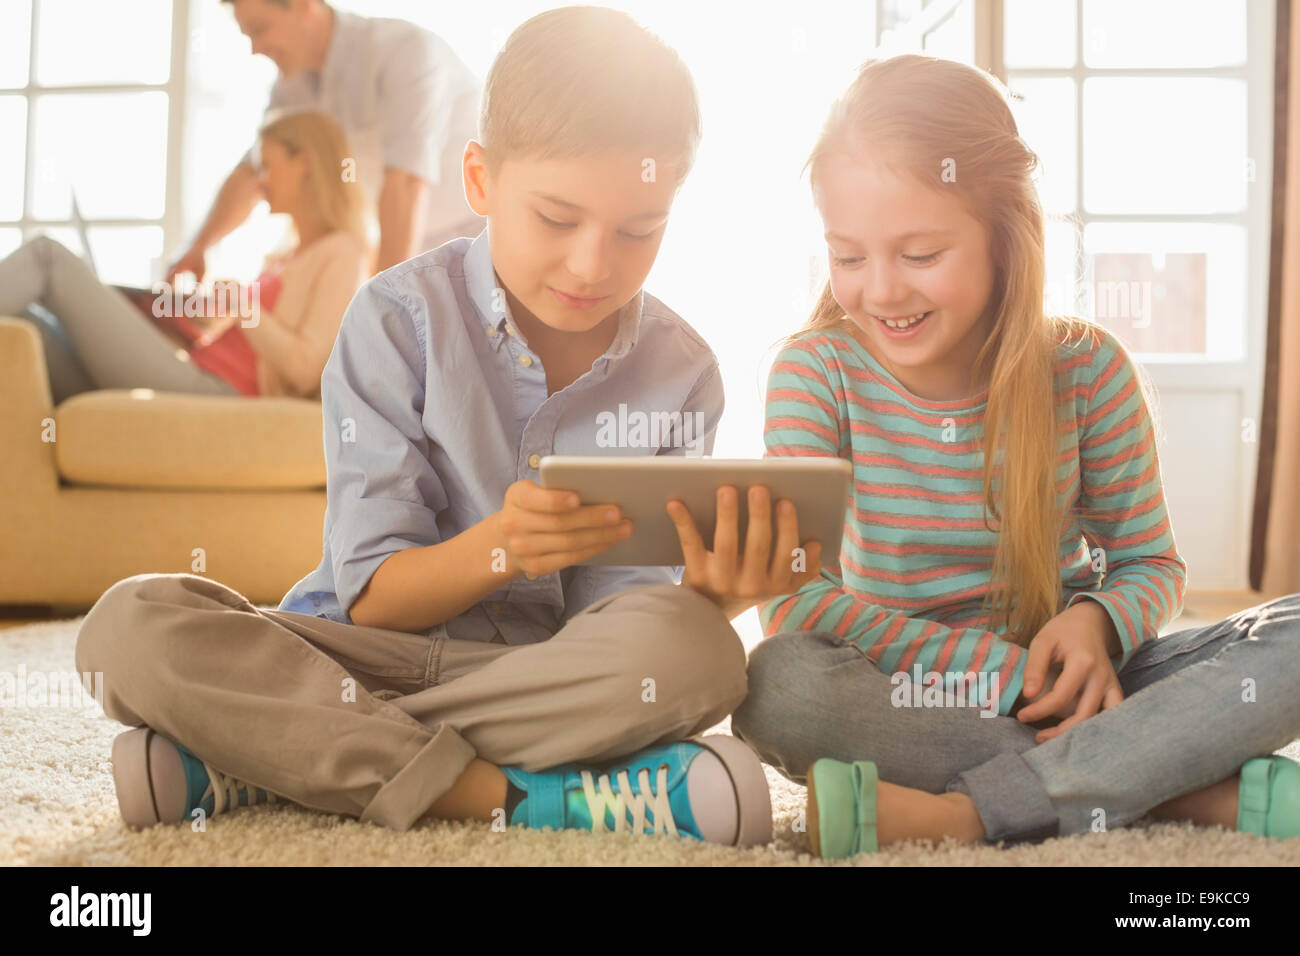 Happy siblings using digital tablet on floor with parents in background - Stock Image